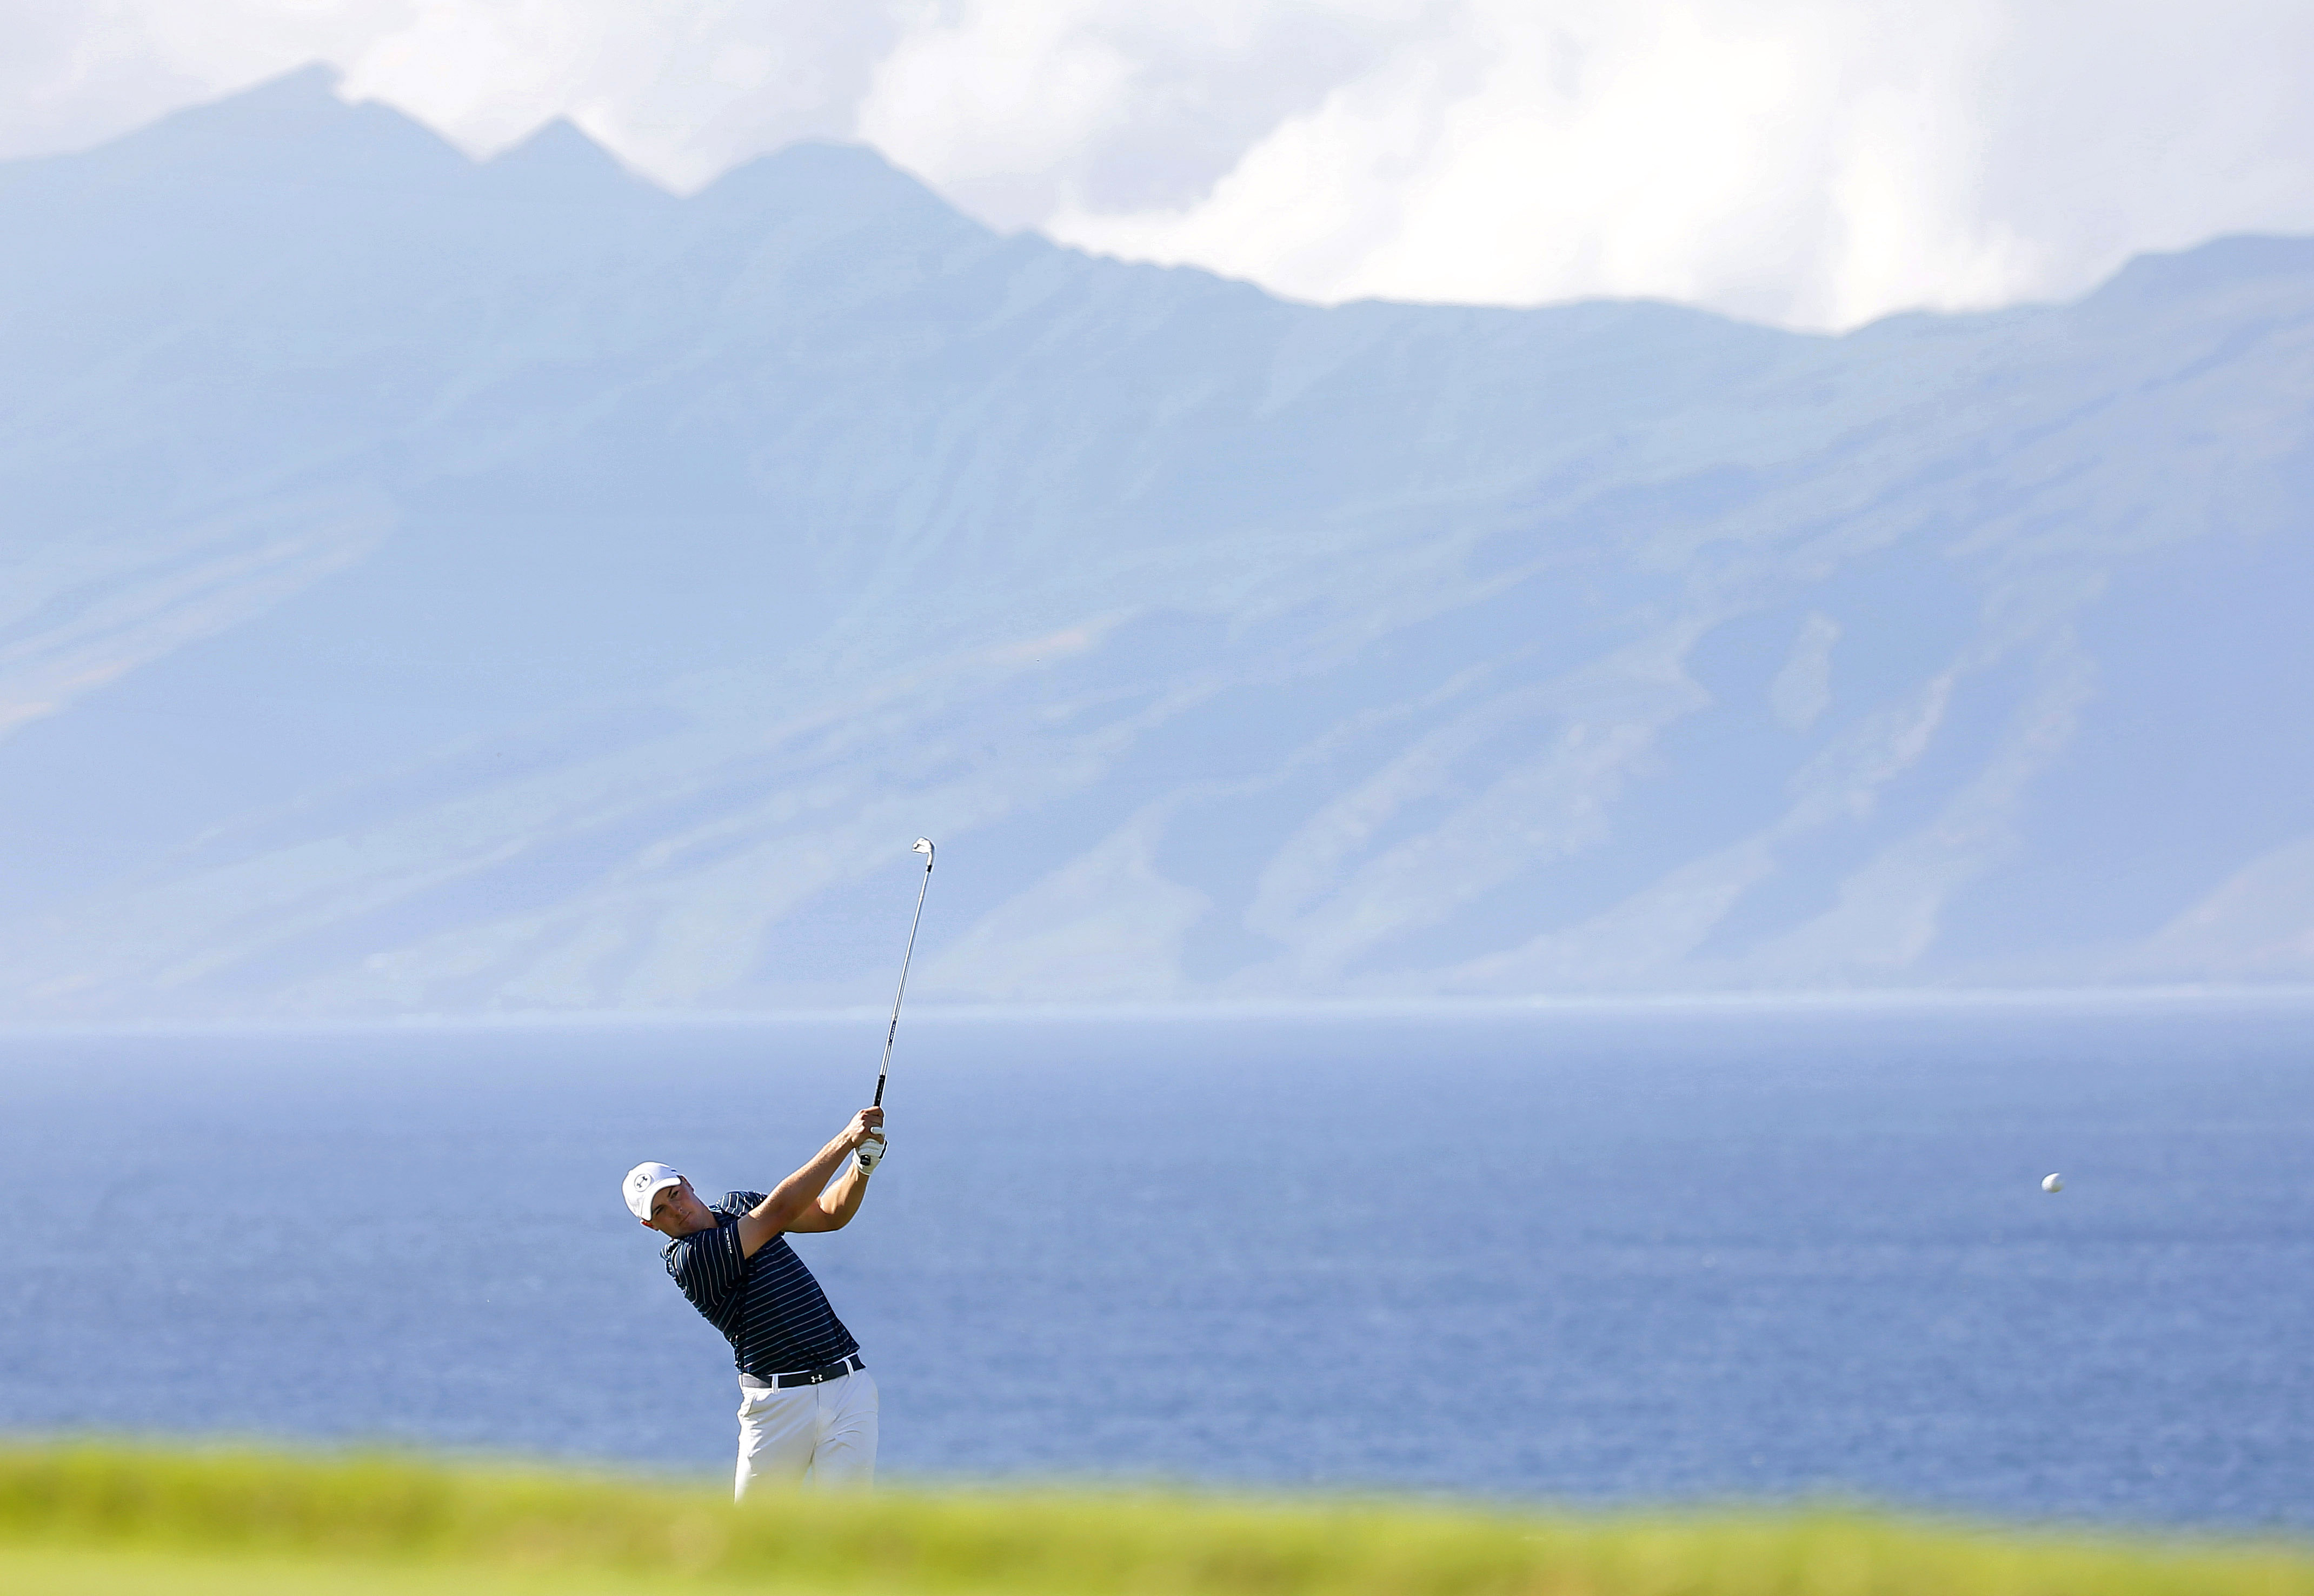 Jordan Spieth hits on the 13th tee during the final round of the Tournament of Champions golf event Sunday, Jan. 10, 2016, at Kapalua Plantation Course in Kapalua, Hawaii.(AP Photo/Matt York)